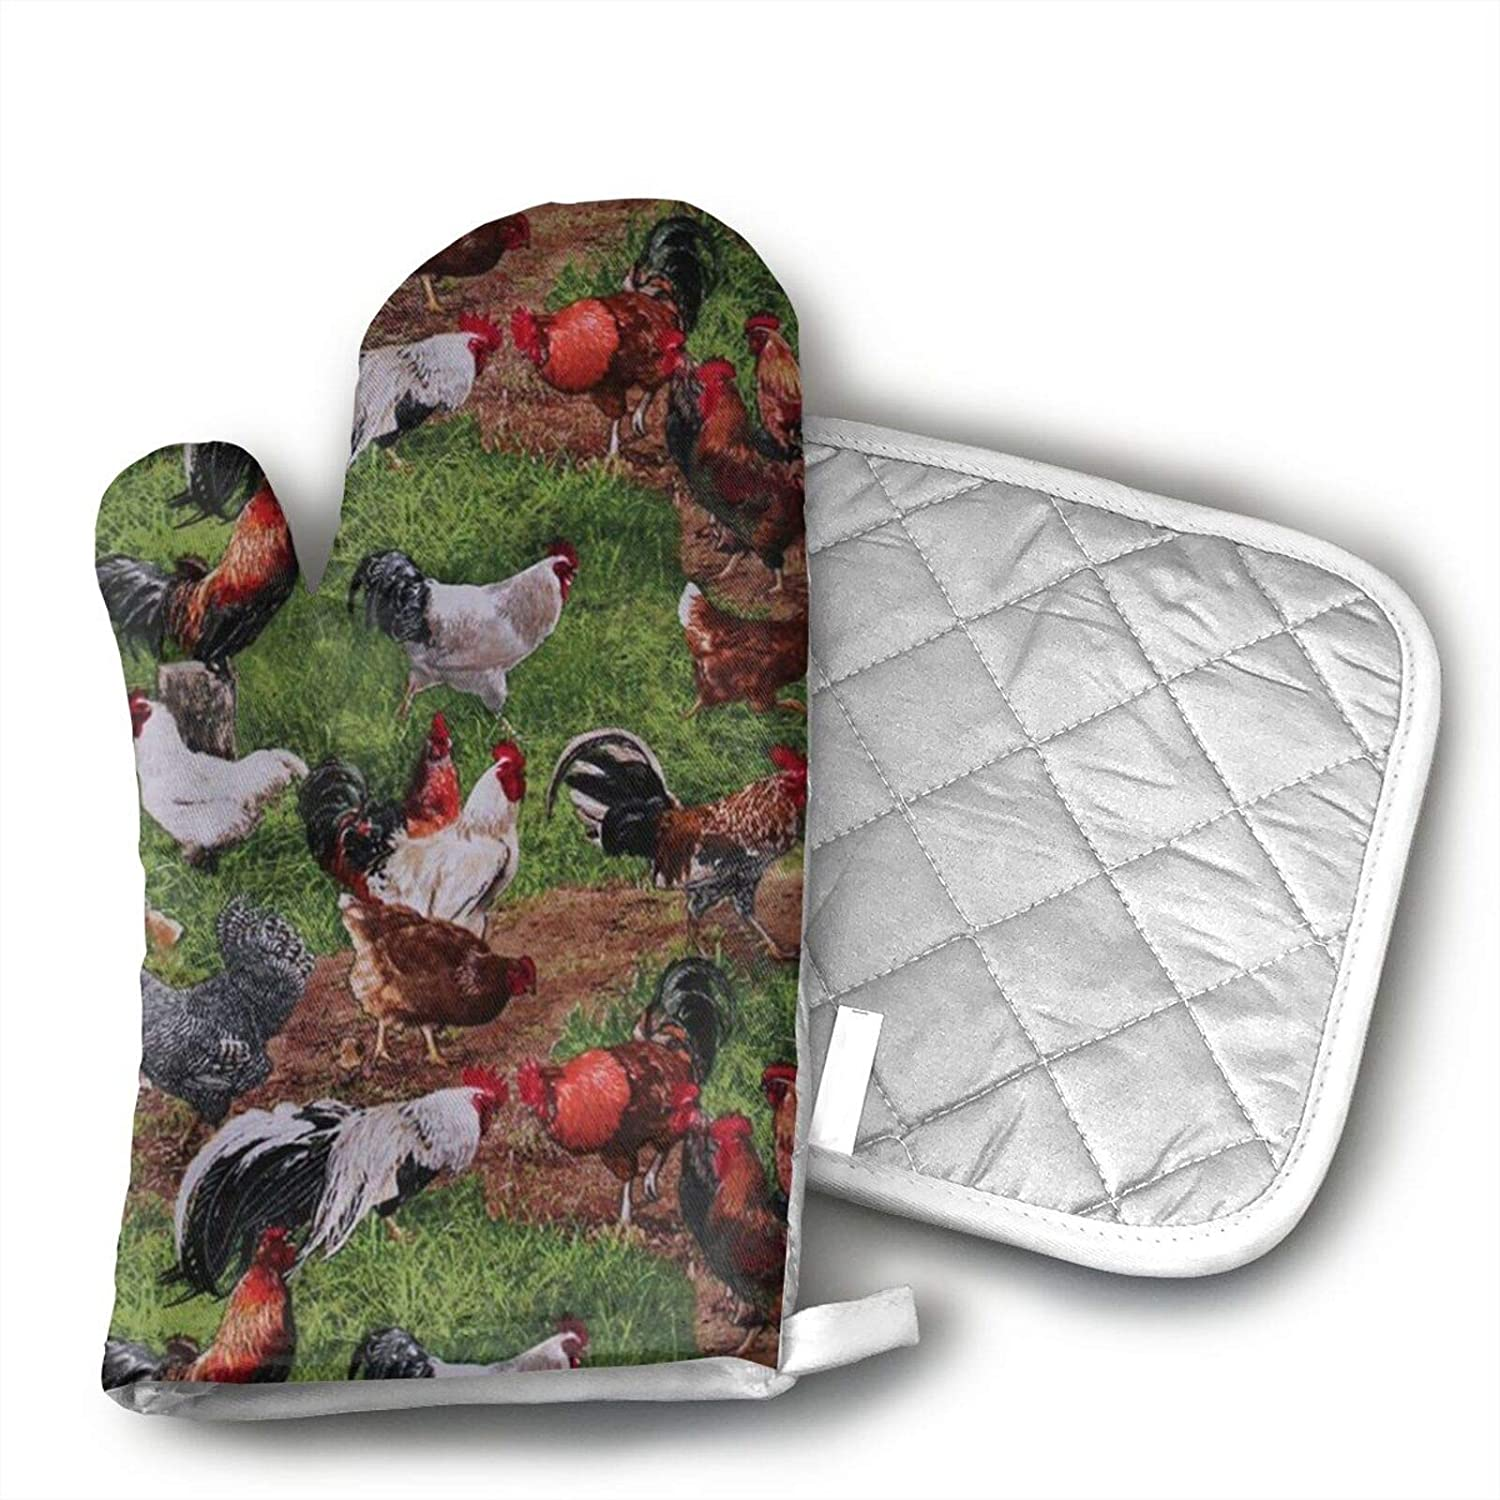 antcreptson Farm Animals Chickens Roosters Oven Mitts Heat Resistant Soft Lining Cotton Pot Holder Oven Gloves Set for Kitchen BBQ Grilling Baking